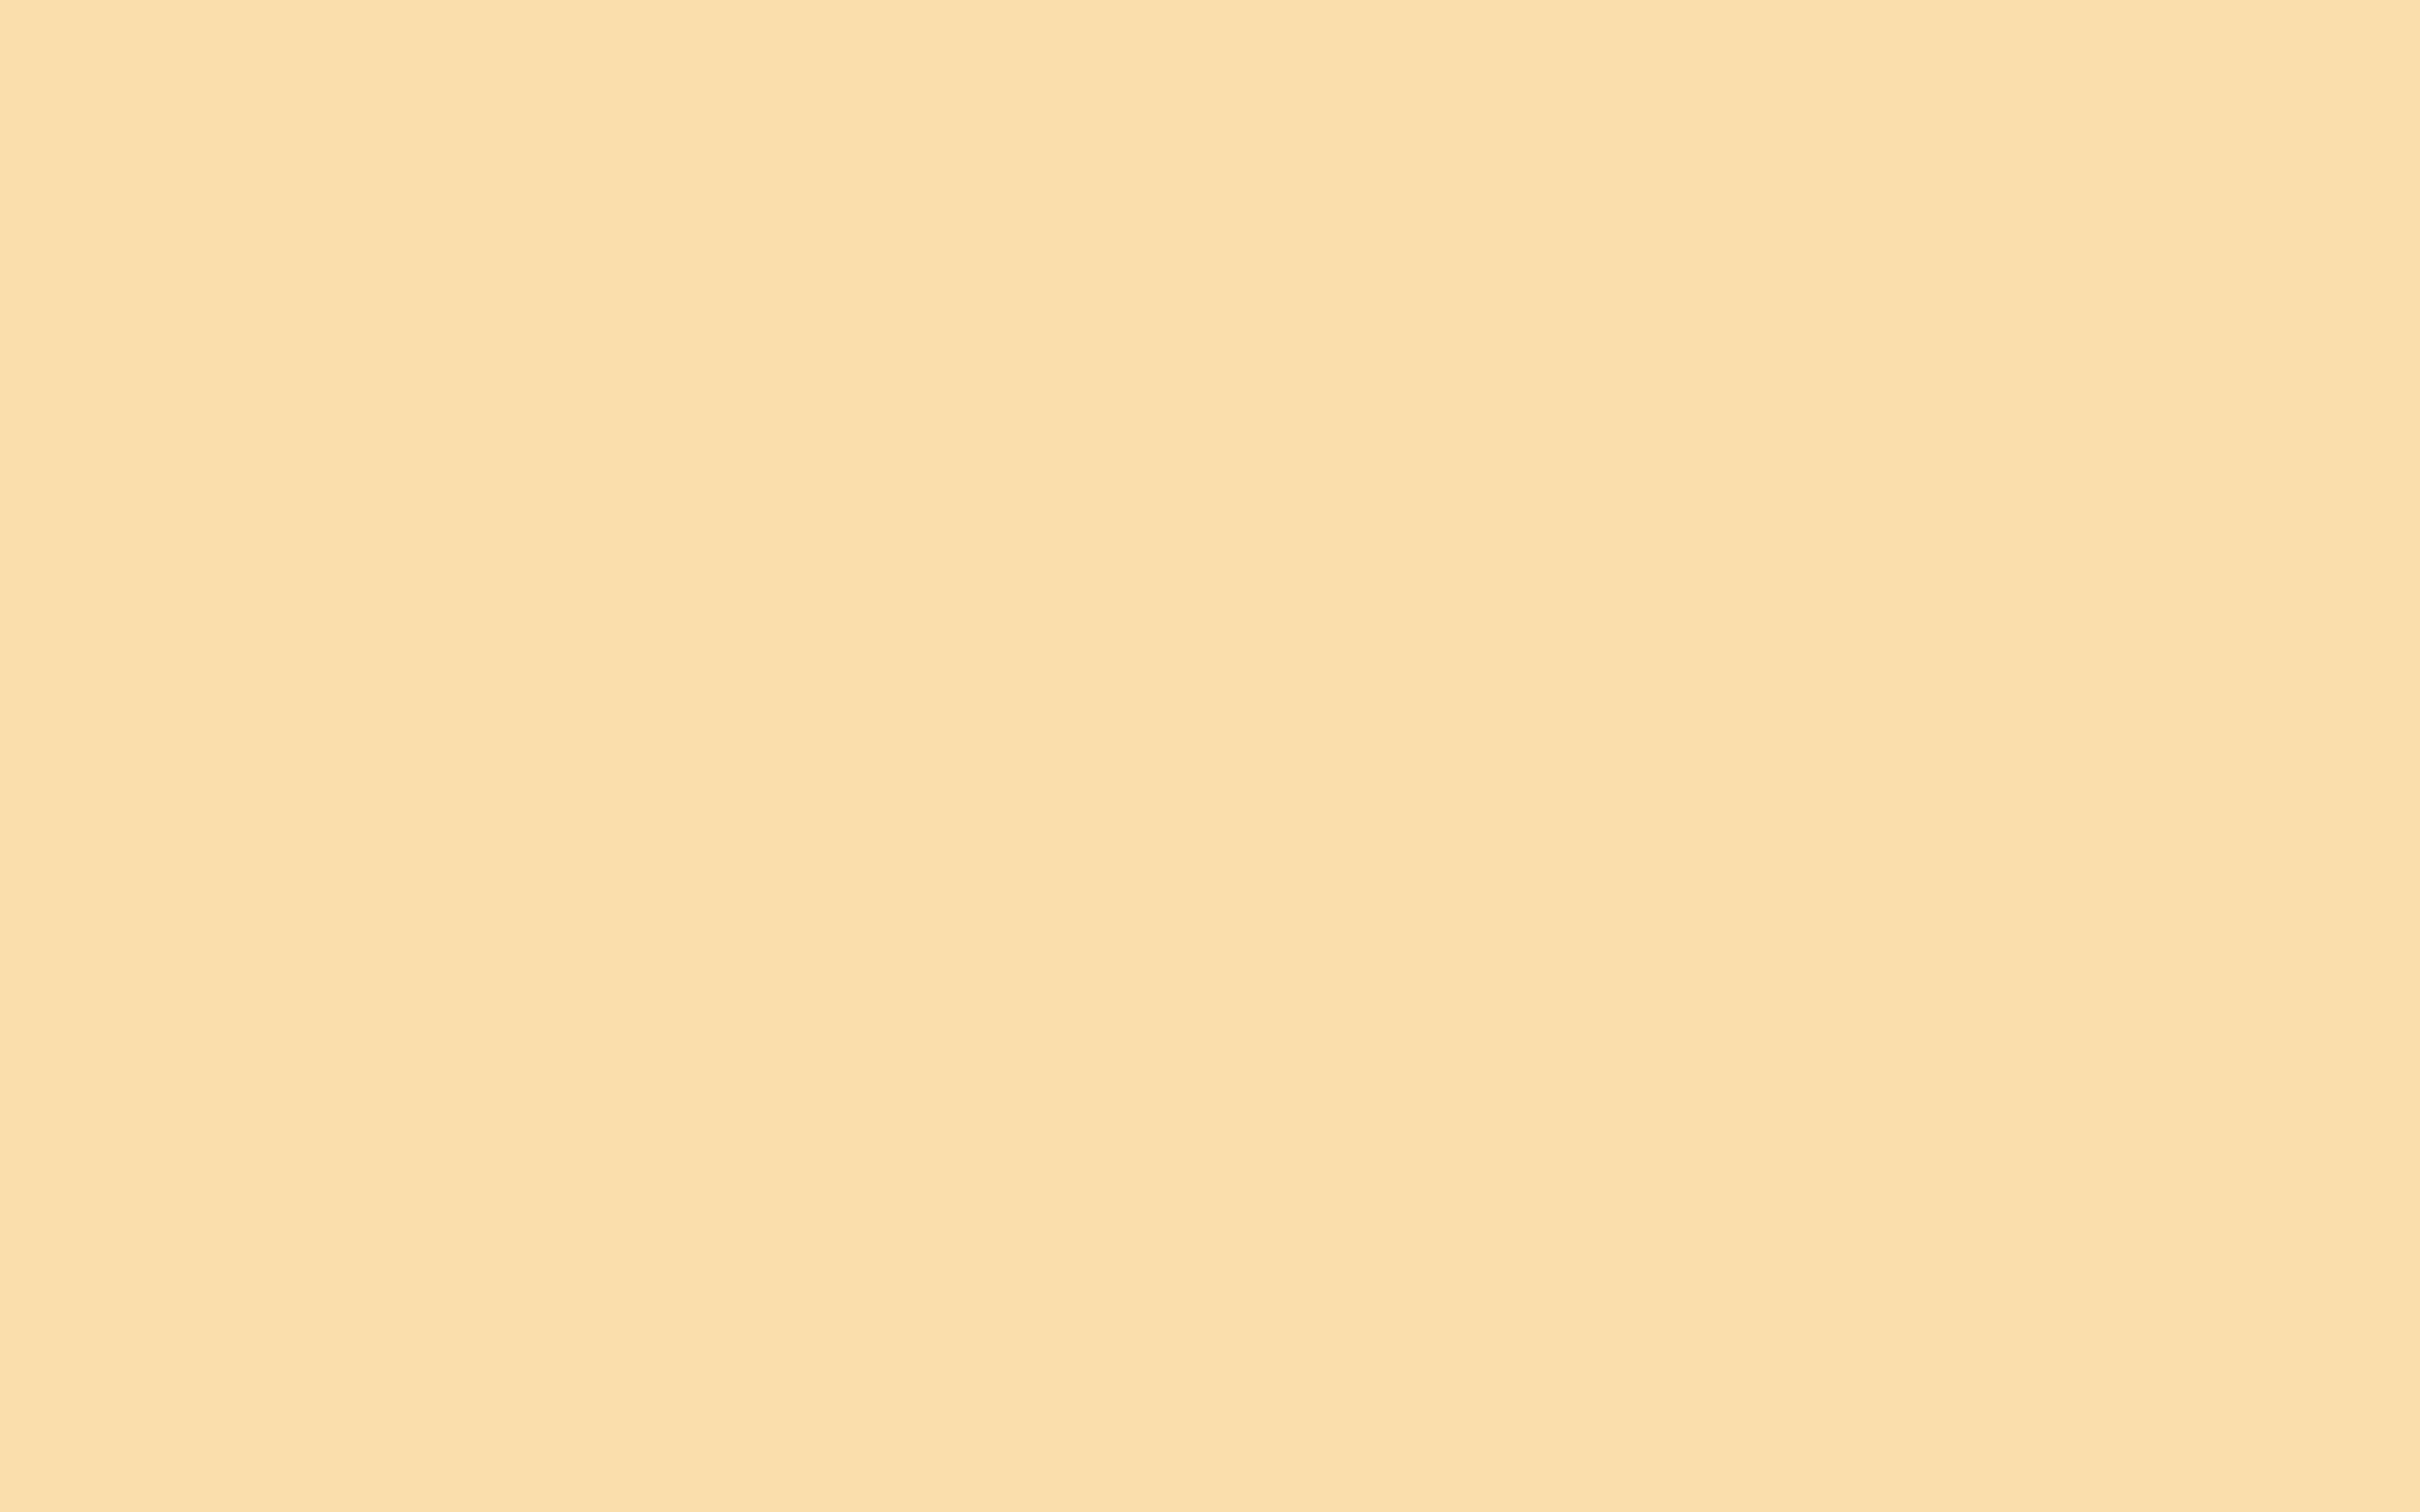 2880x1800 Peach-yellow Solid Color Background